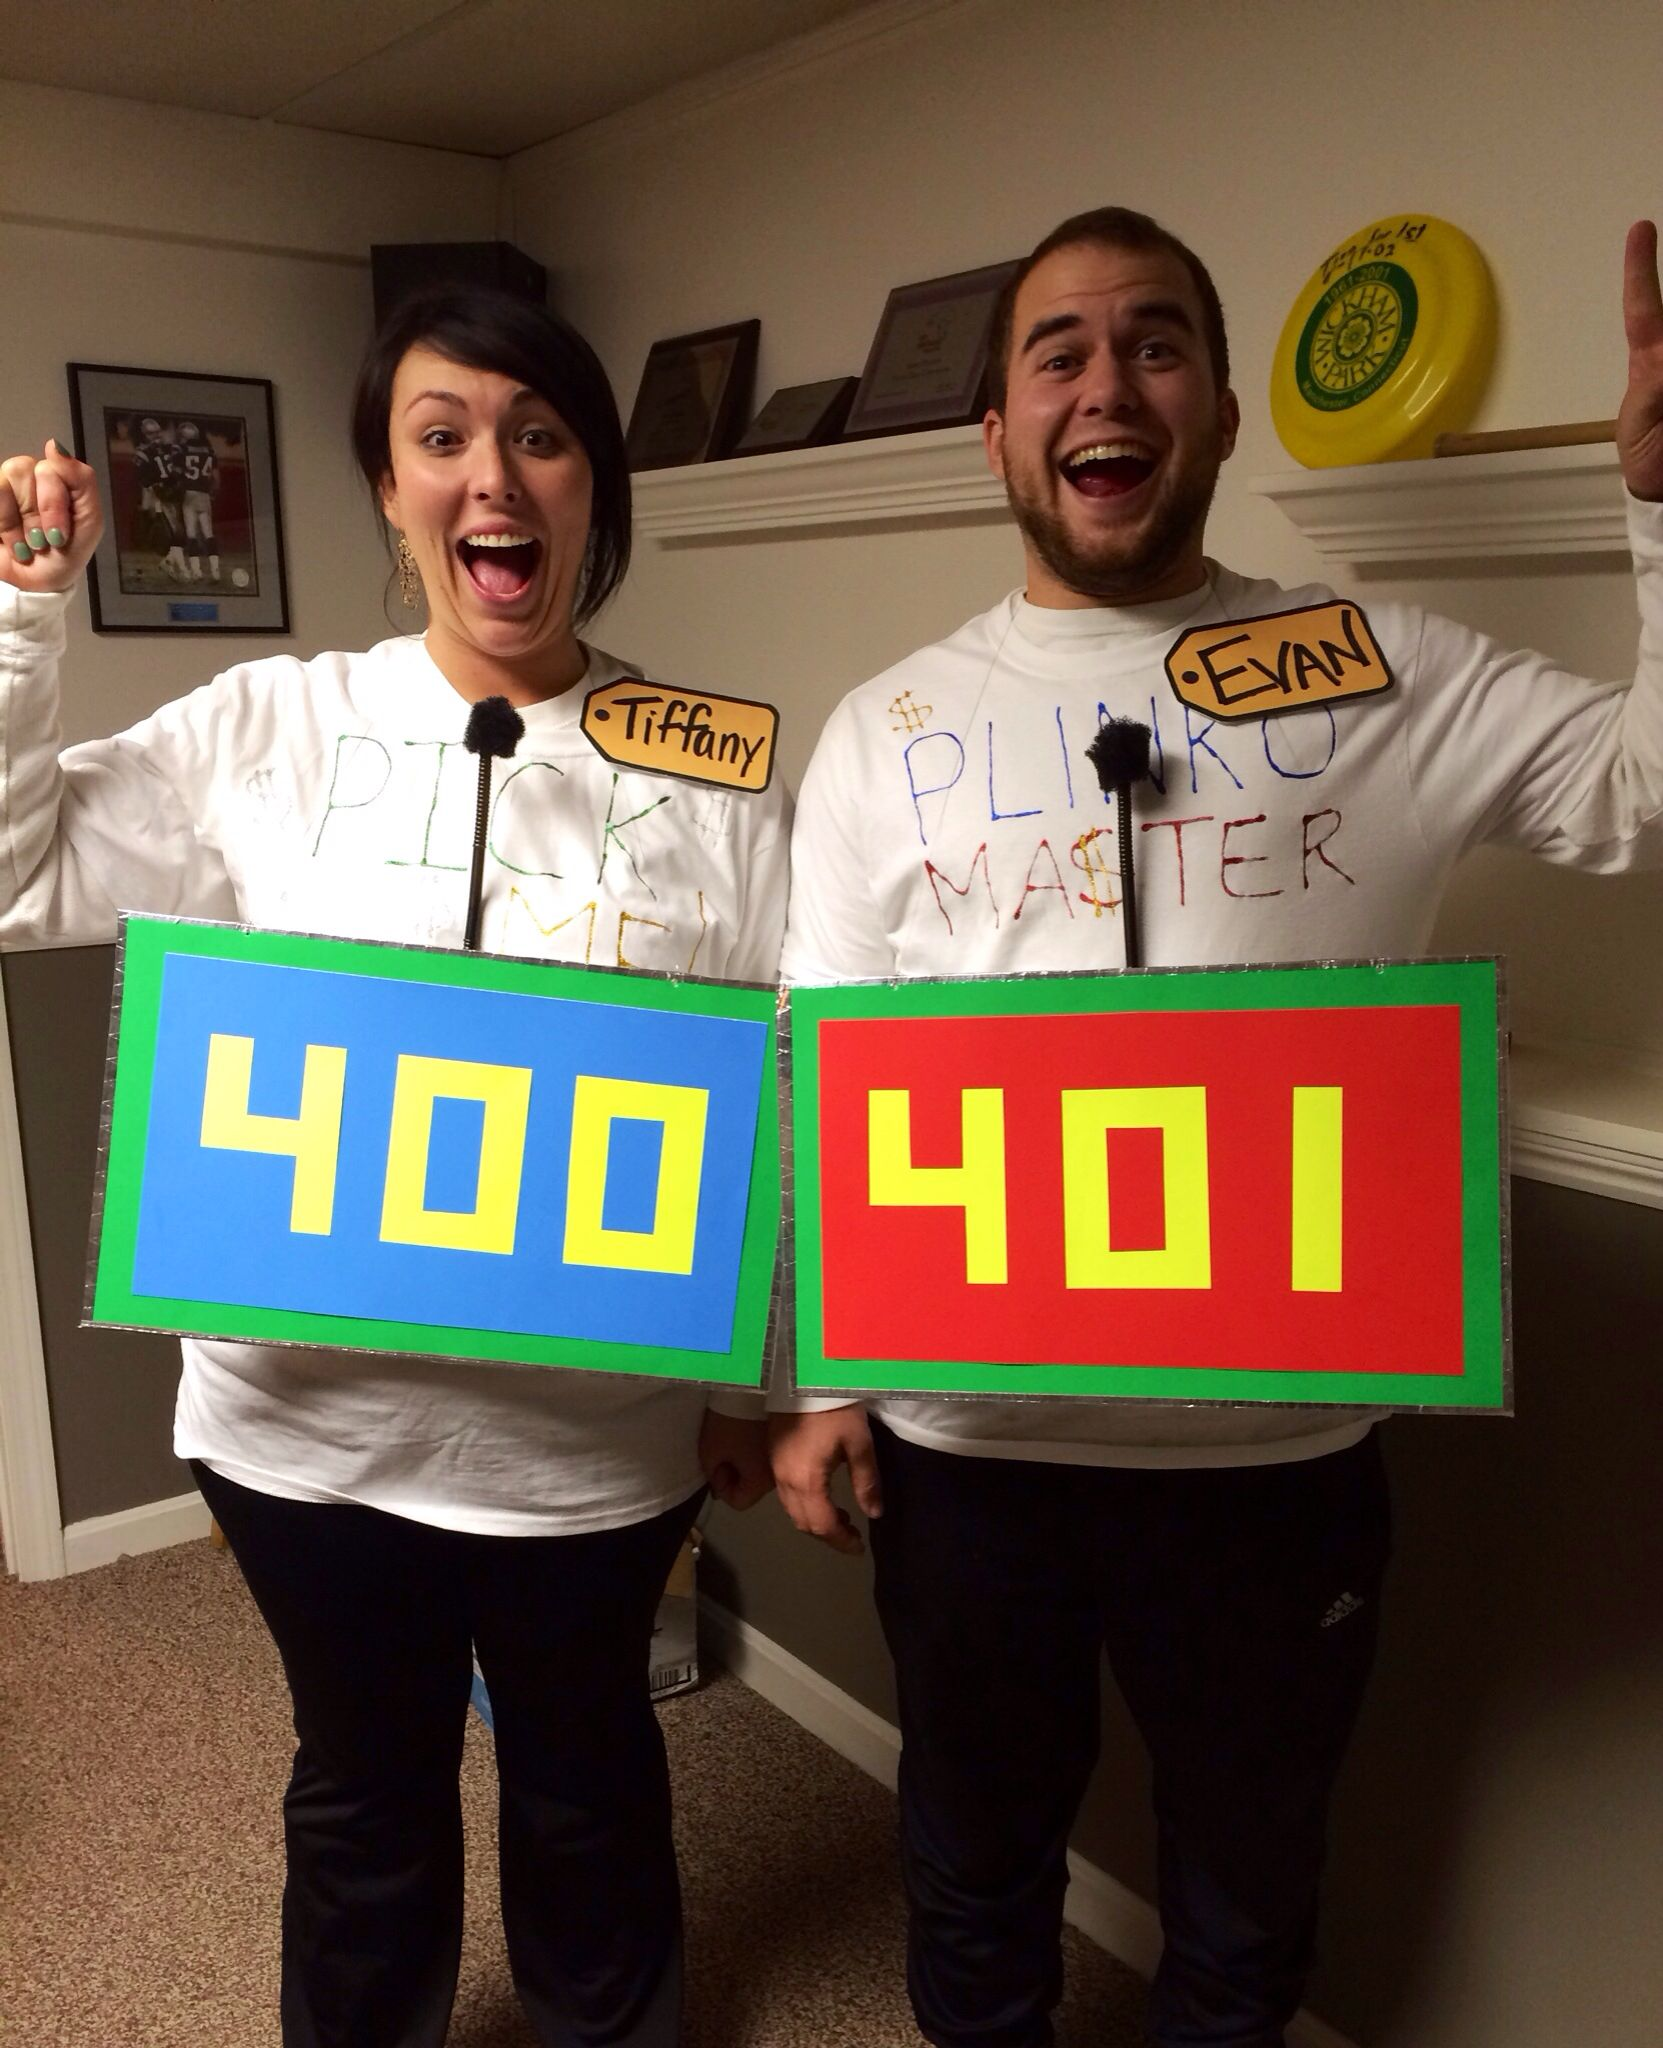 Halloween costumes Homemade costumes couple costume price is